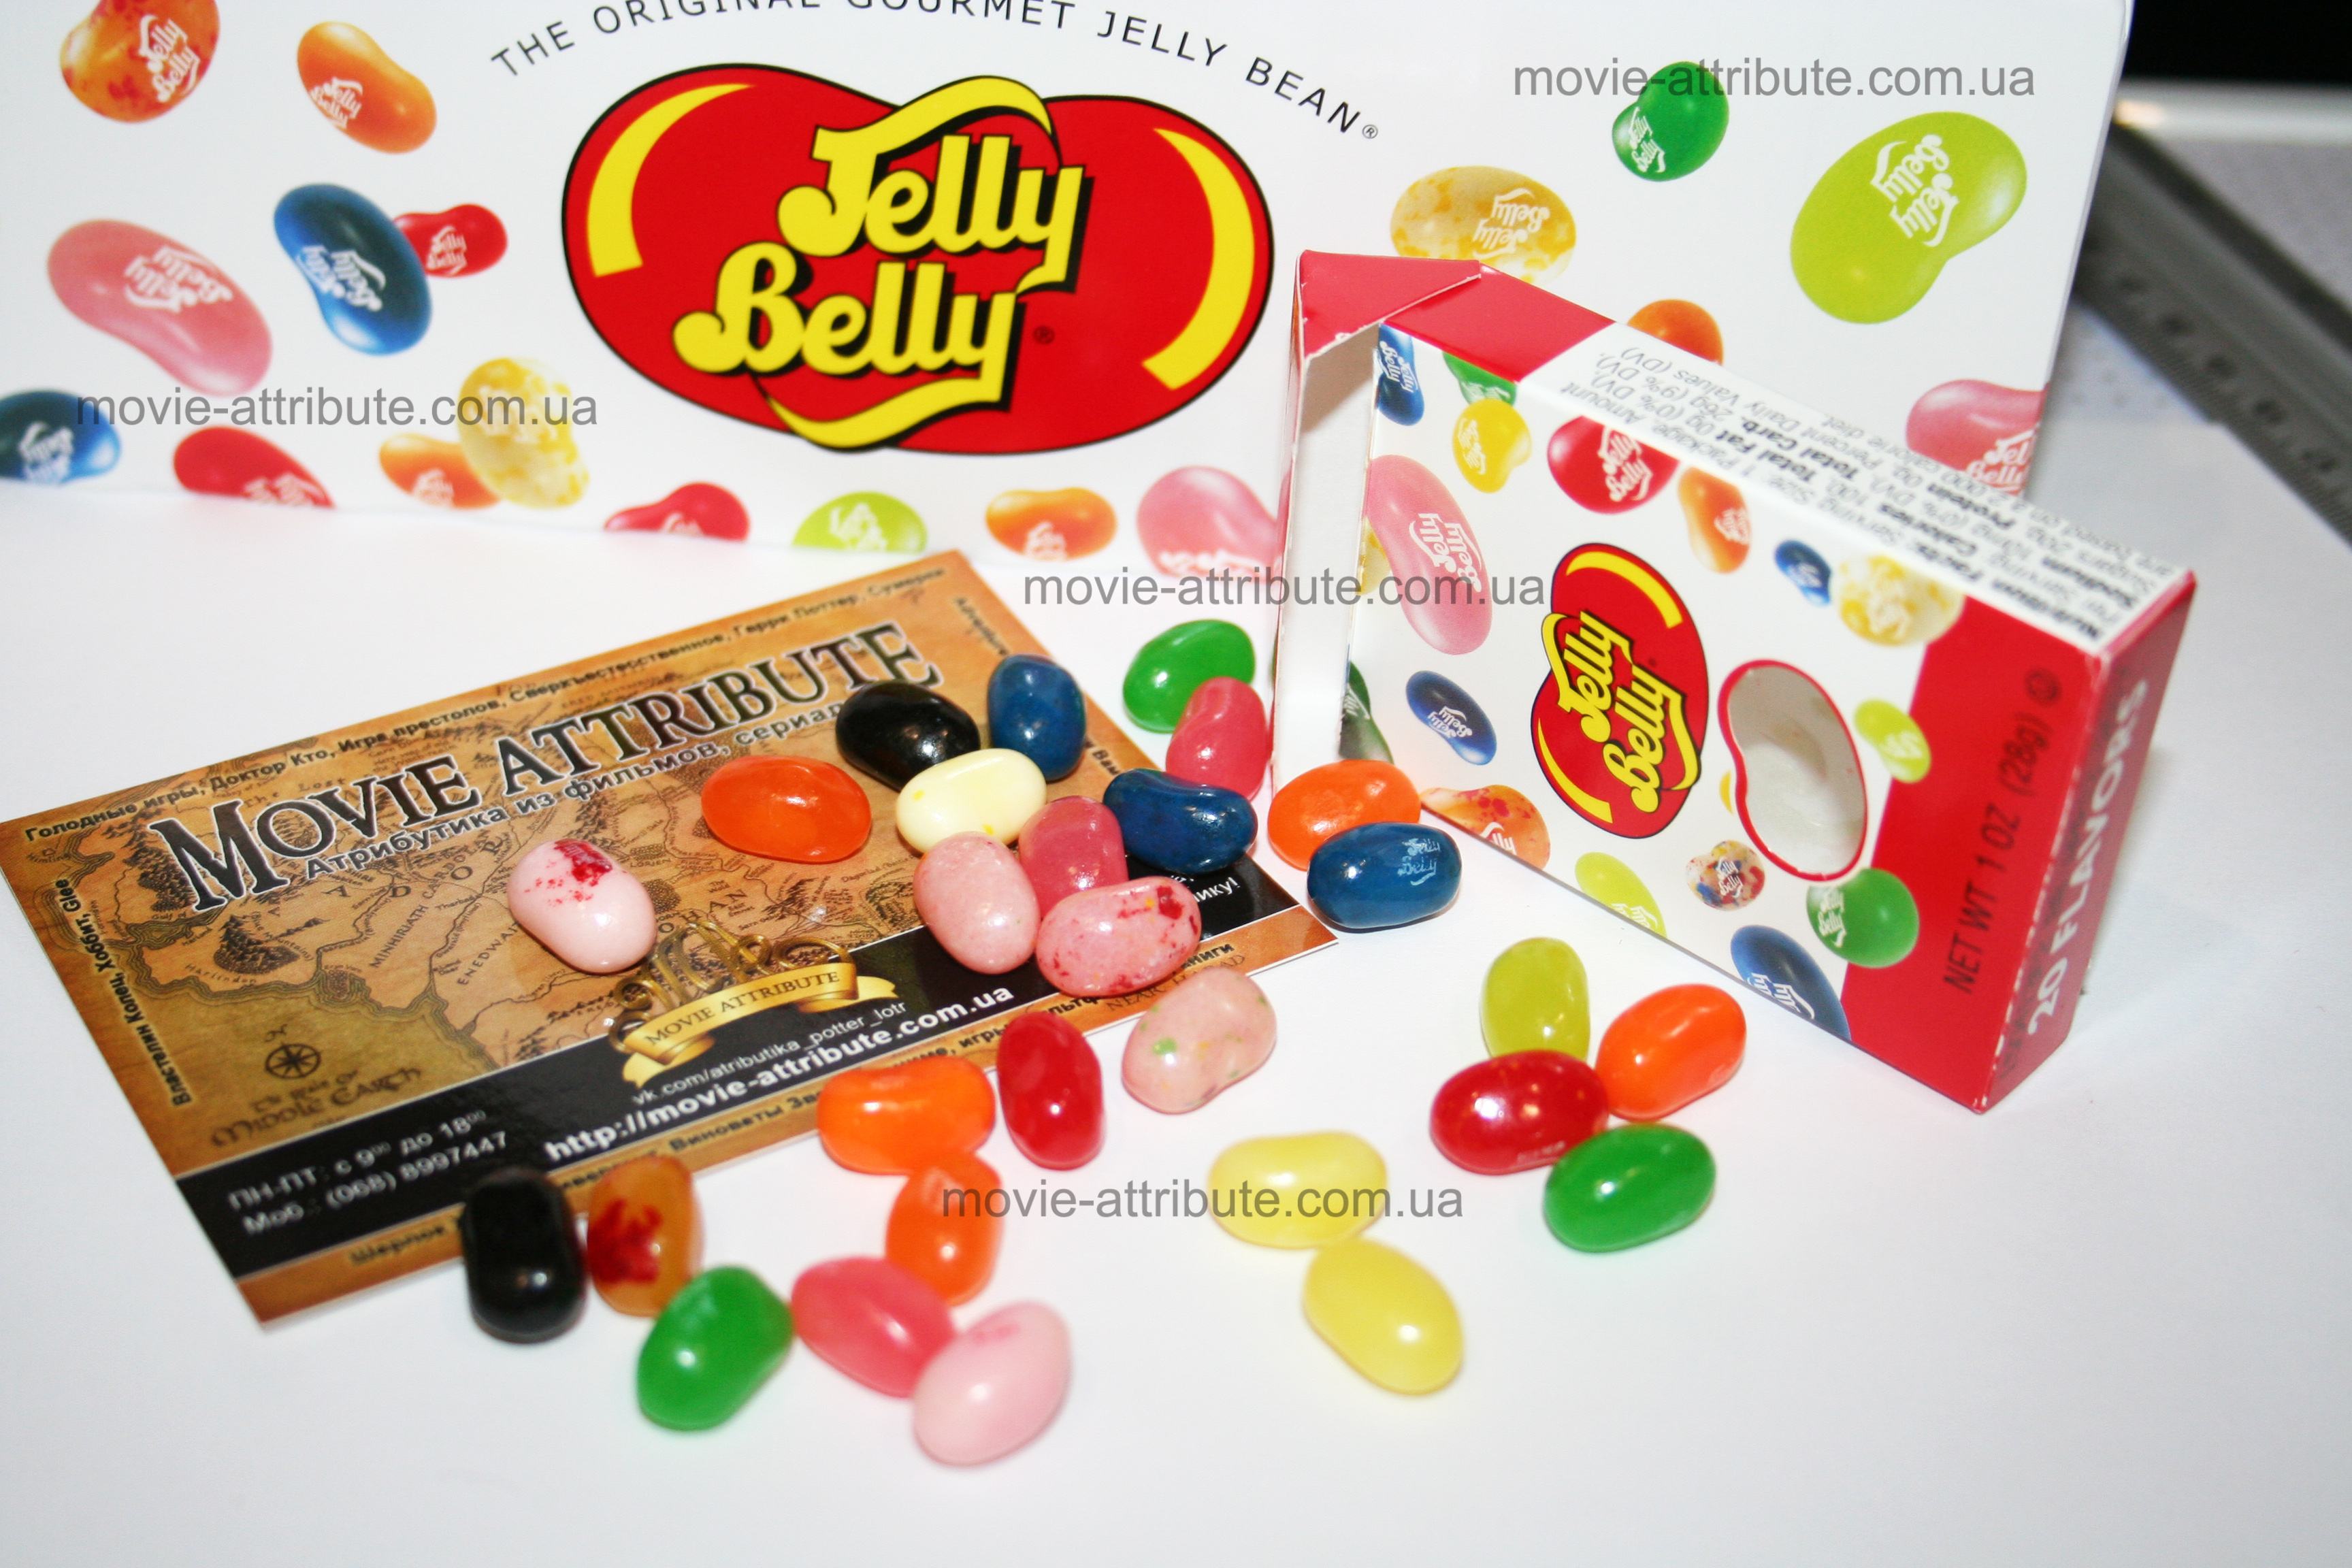 Bean jelly movie